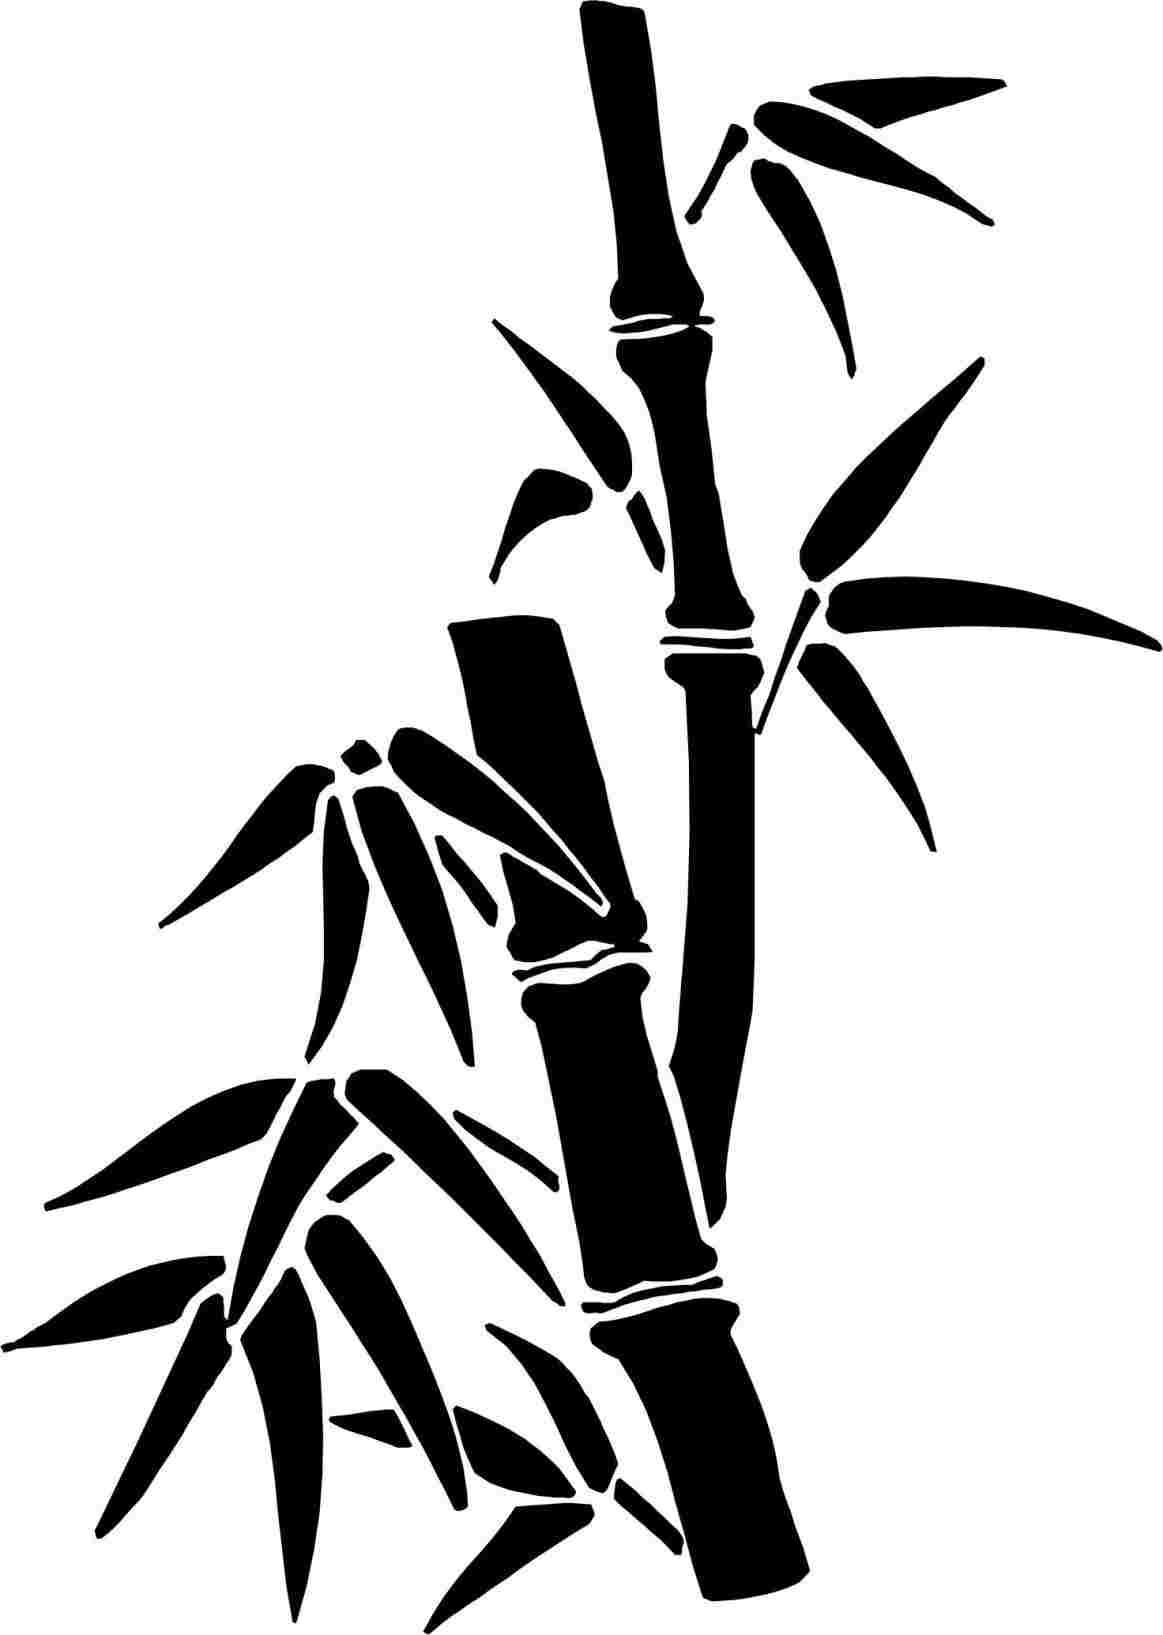 How Simple Easy Bamboo Drawing To Draw Bamboo Steps With